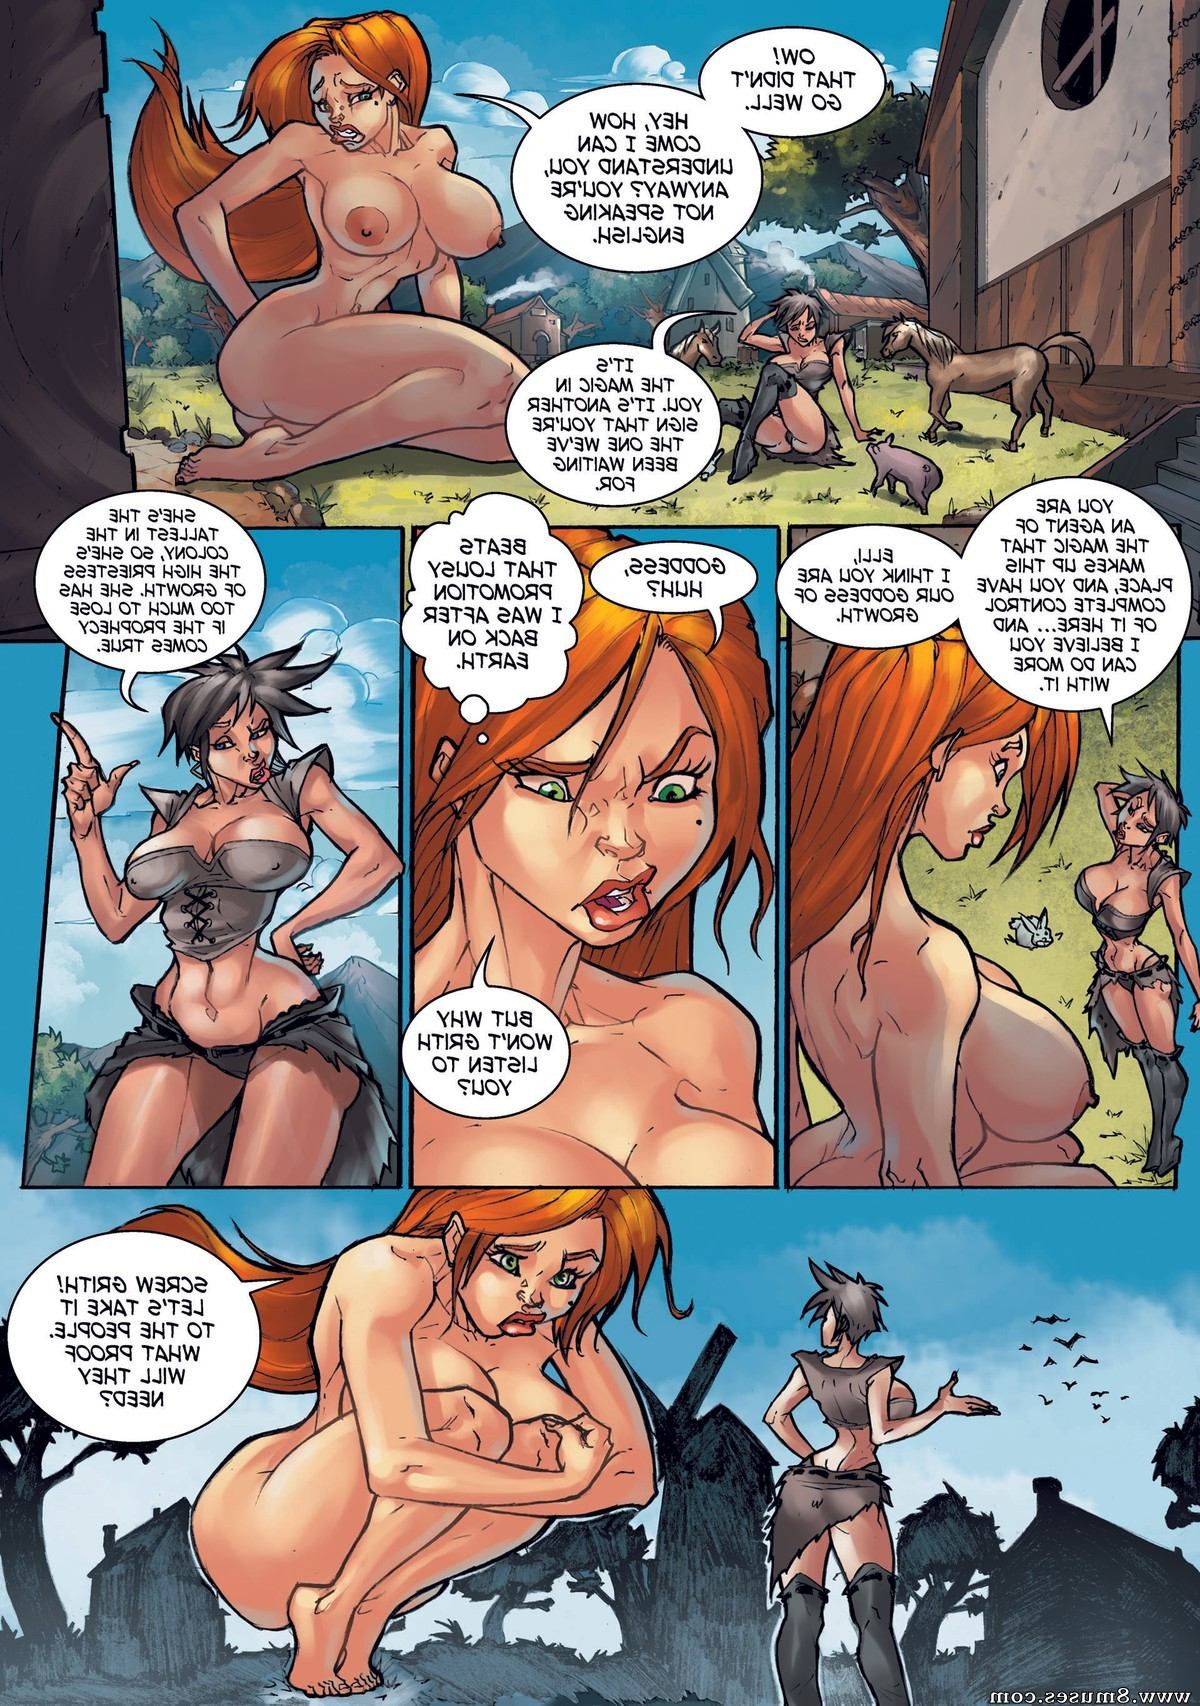 Giantess-Fan-Comics/Bigger-Than-This/Issue-3 Bigger_Than_This_-_Issue_3_7.jpg